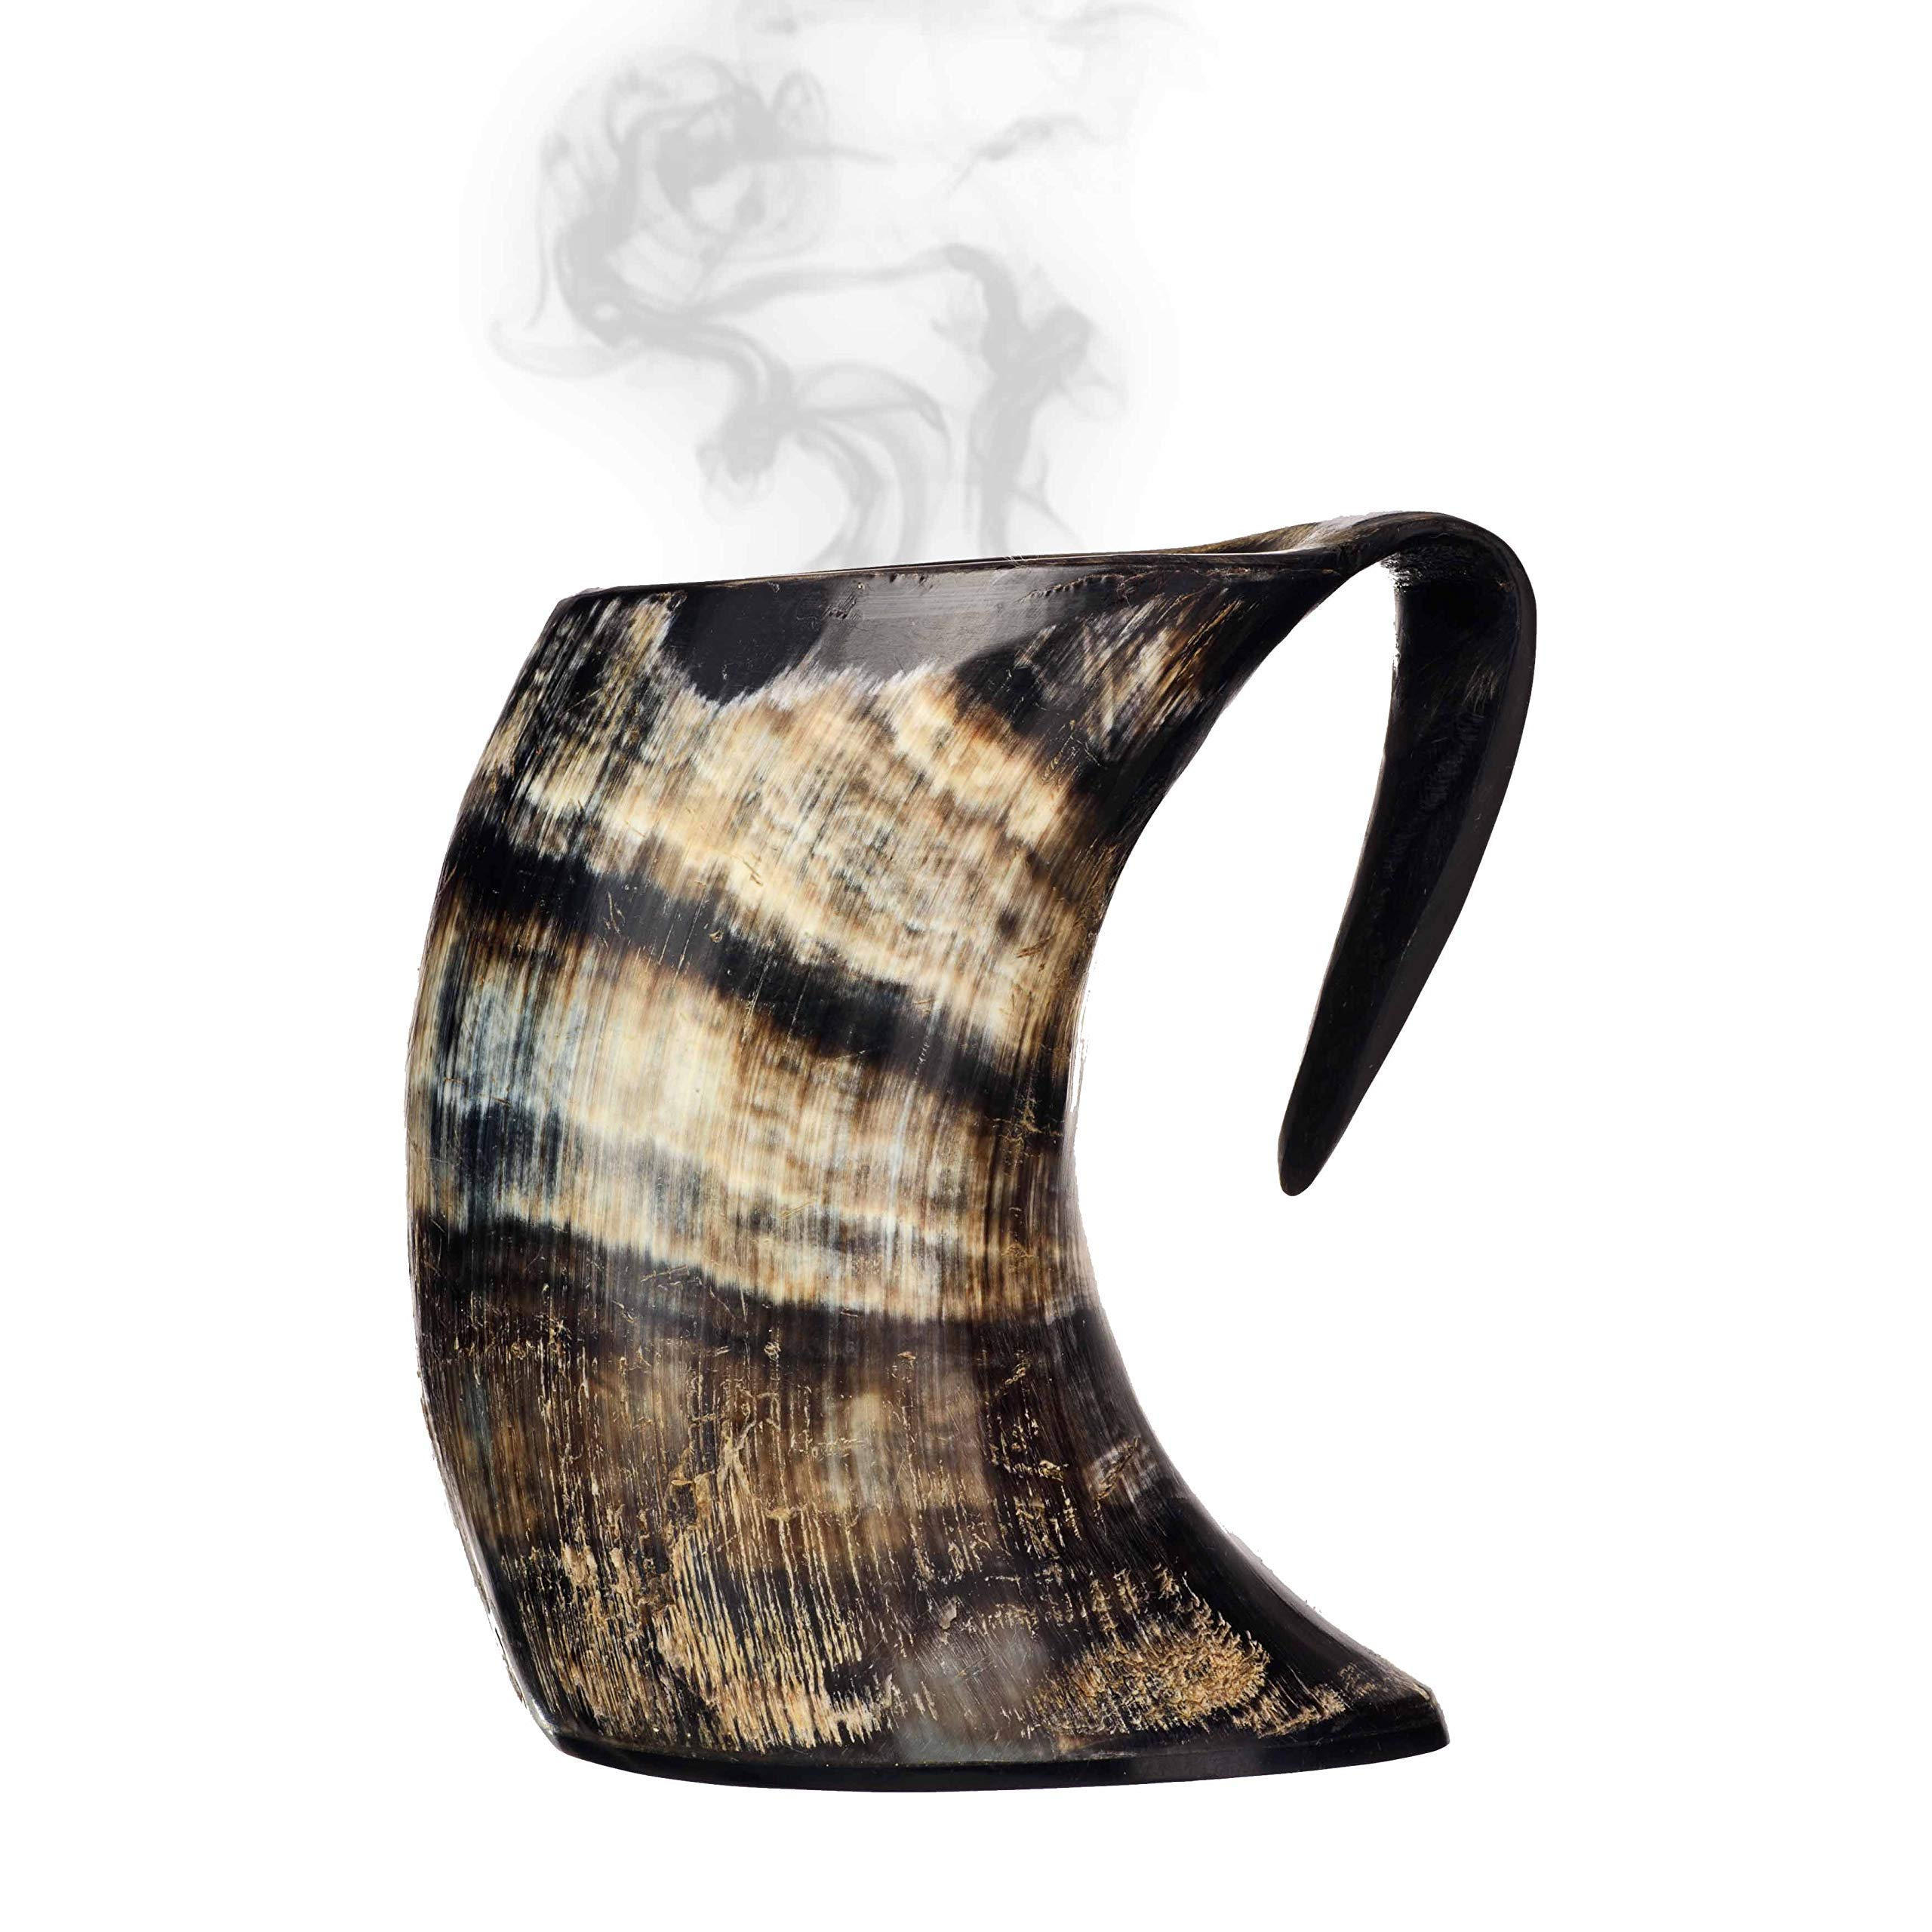 AleHorn Hot Horn Mug Tankard - Safely Holds Hot and Cold Liquids, Coffee, Tea, Hot Chocolate, Wine, Beer, Mead (Tall)